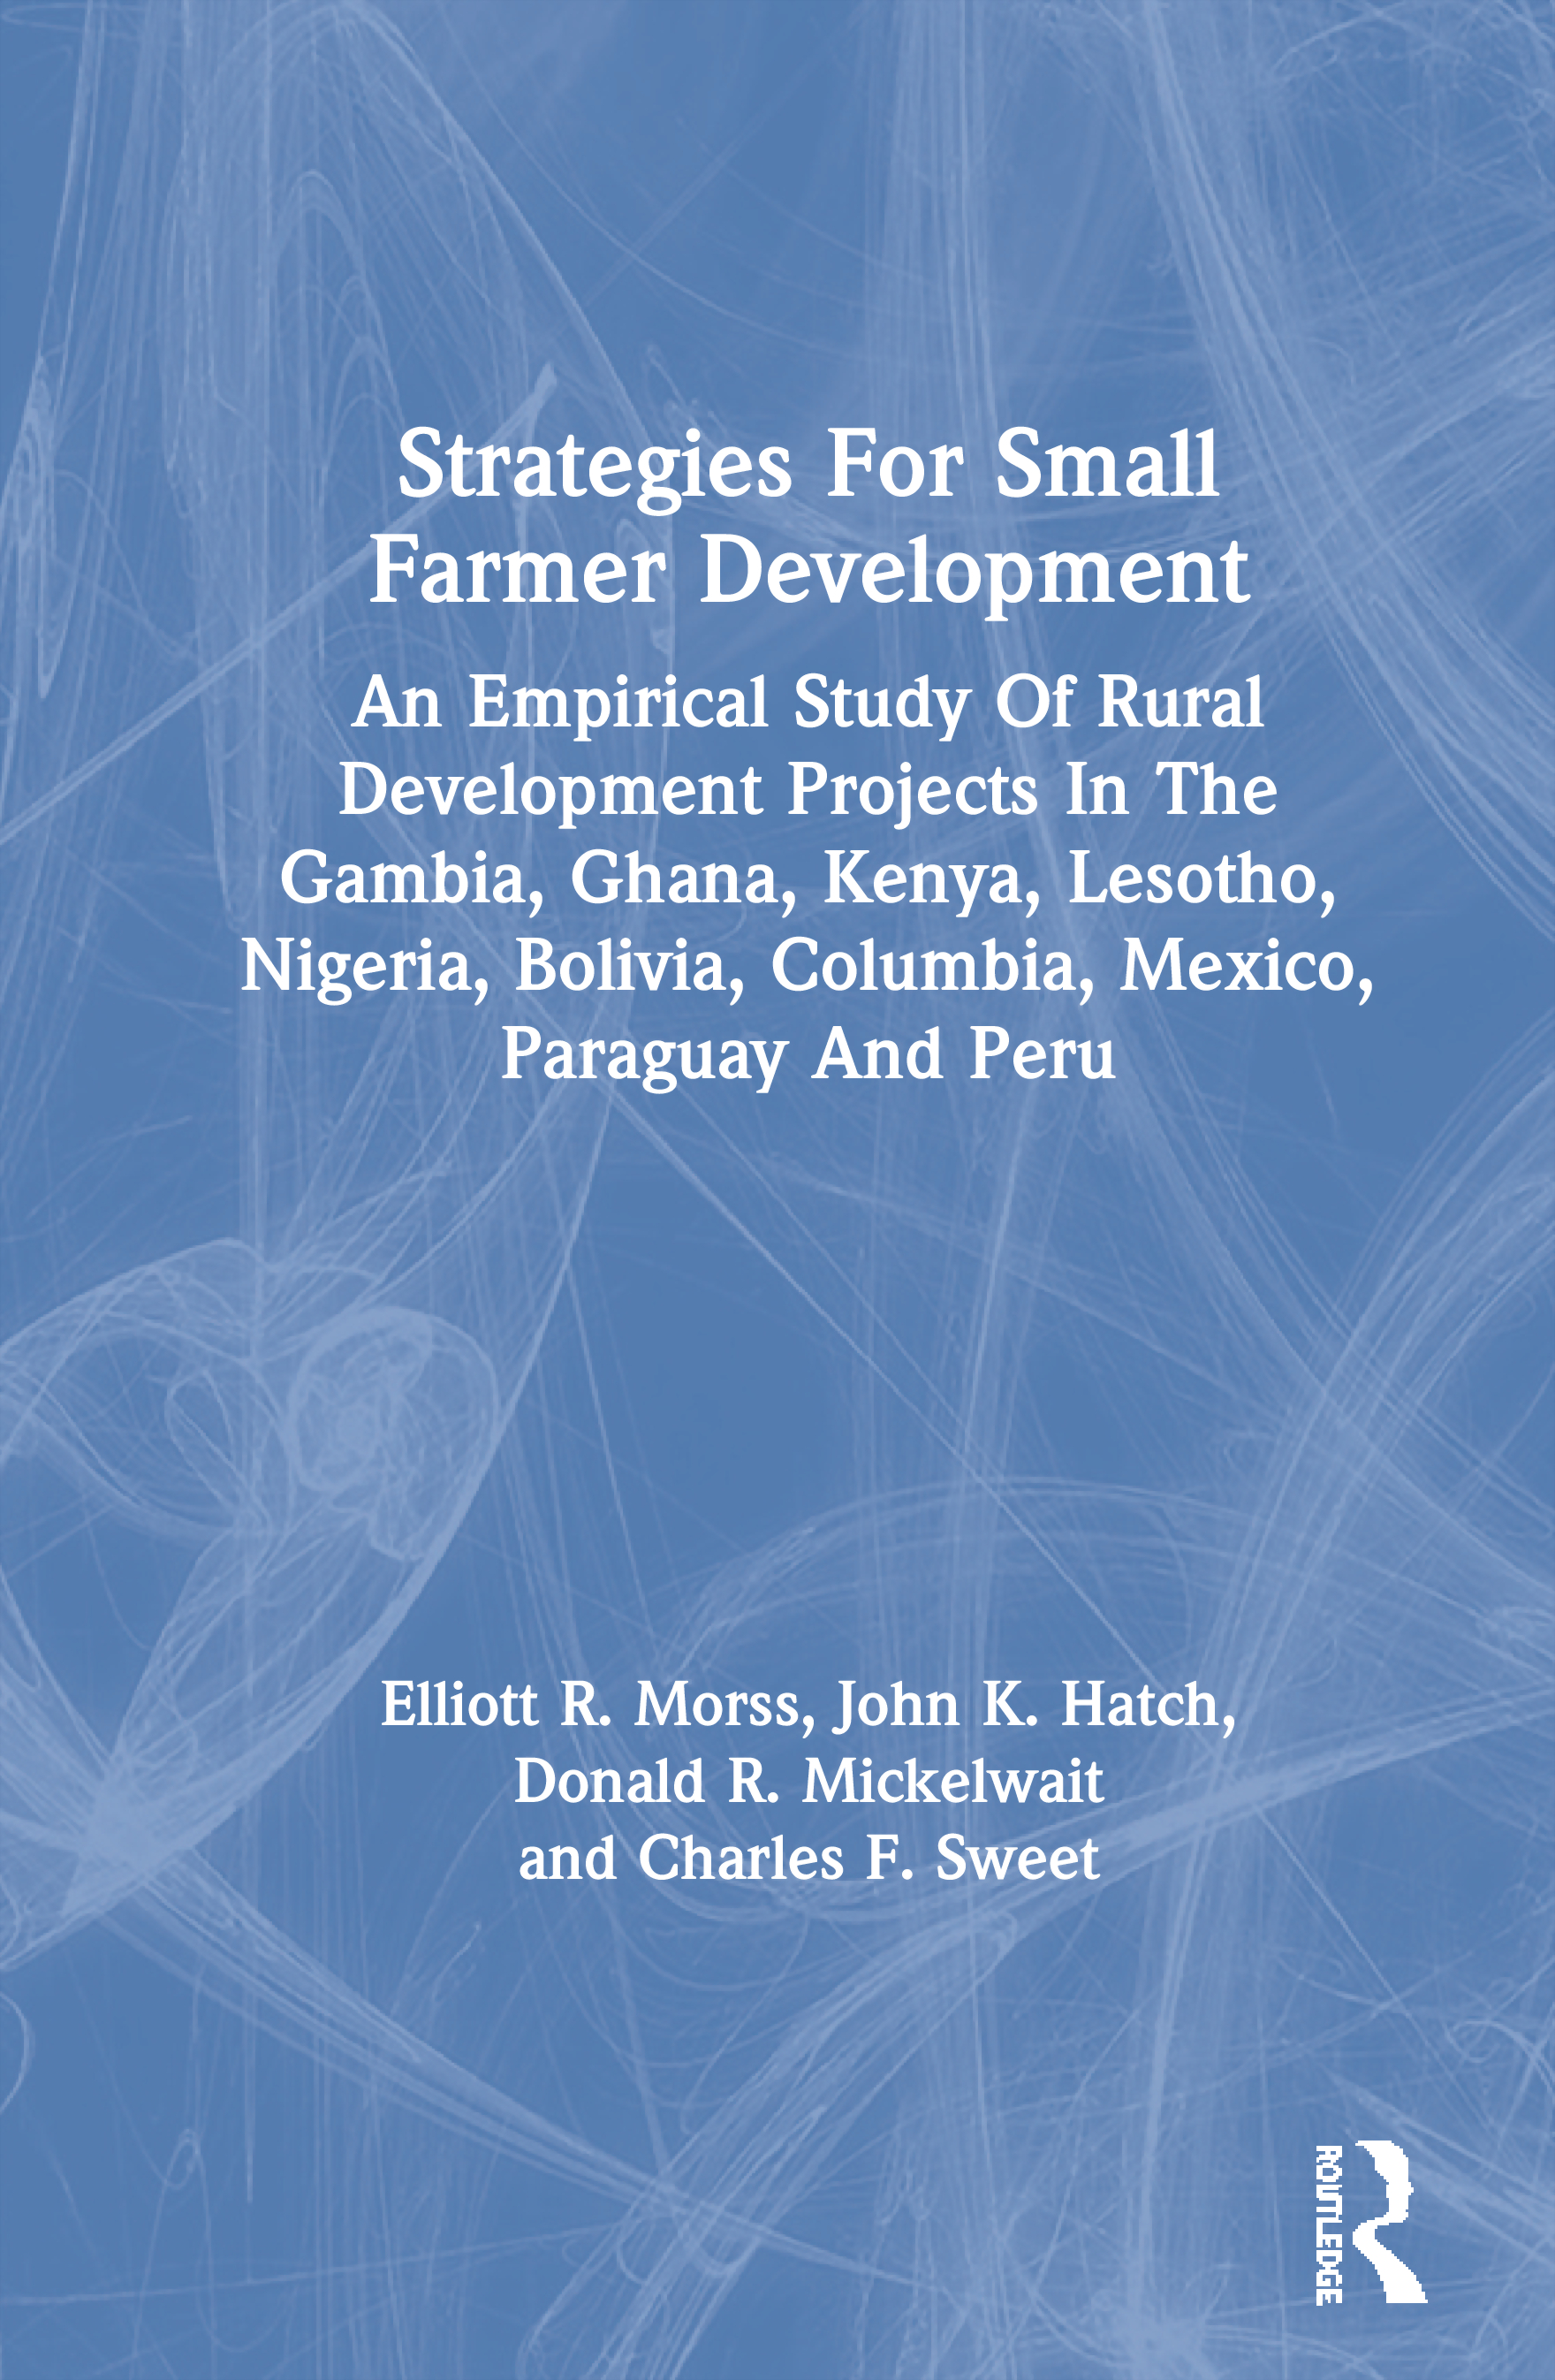 Strategies For Small Farmer Development: An Empirical Study Of Rural Development Projects In The Gambia, Ghana, Kenya, Lesotho, Nigeria, Bolivia, Columbia, Mexico, Paraguay And Peru, 1st Edition (Hardback) book cover